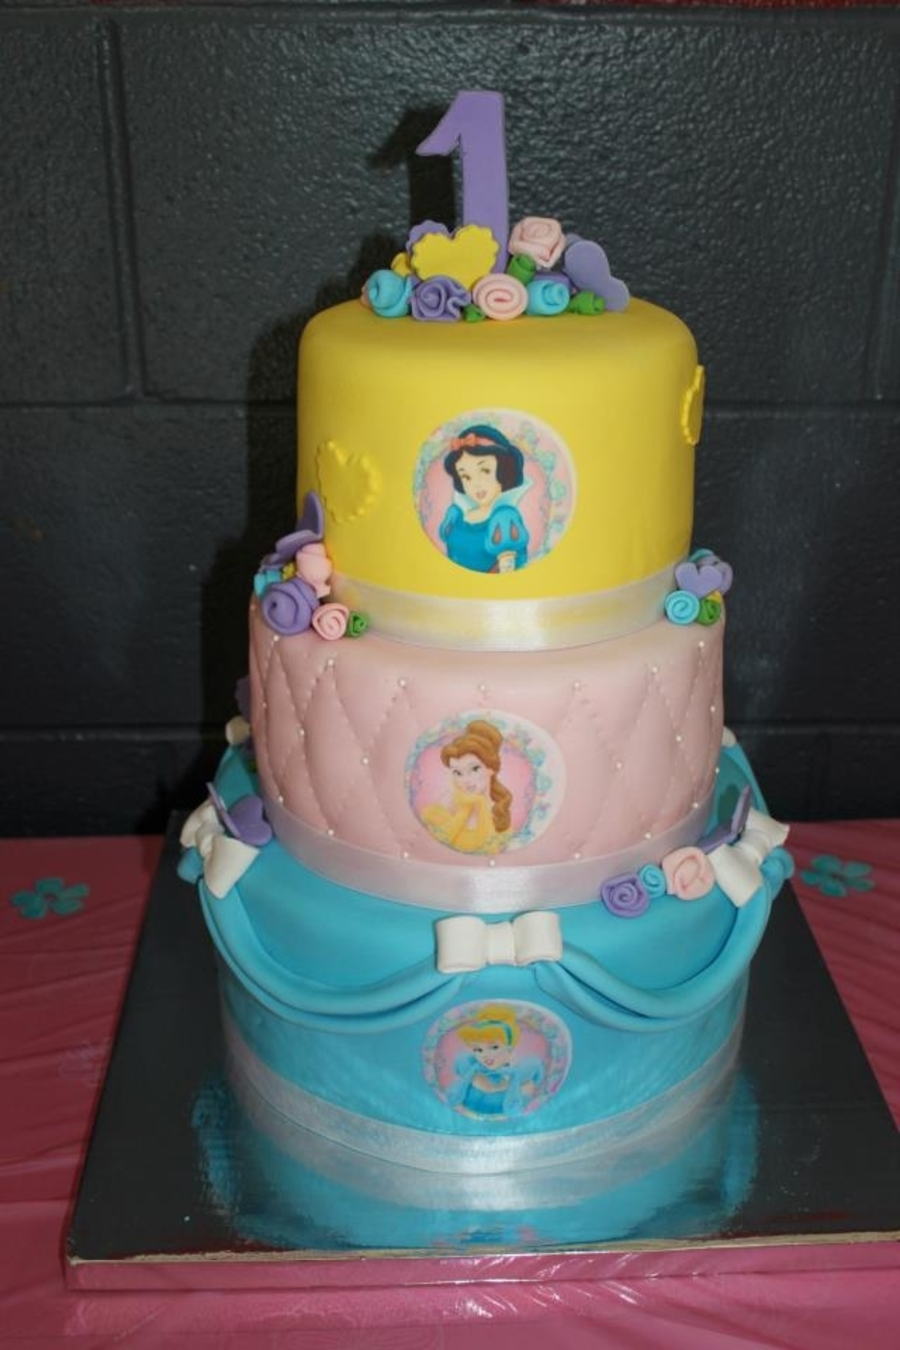 Disney Princess 1St Birthday Cake - CakeCentral.com